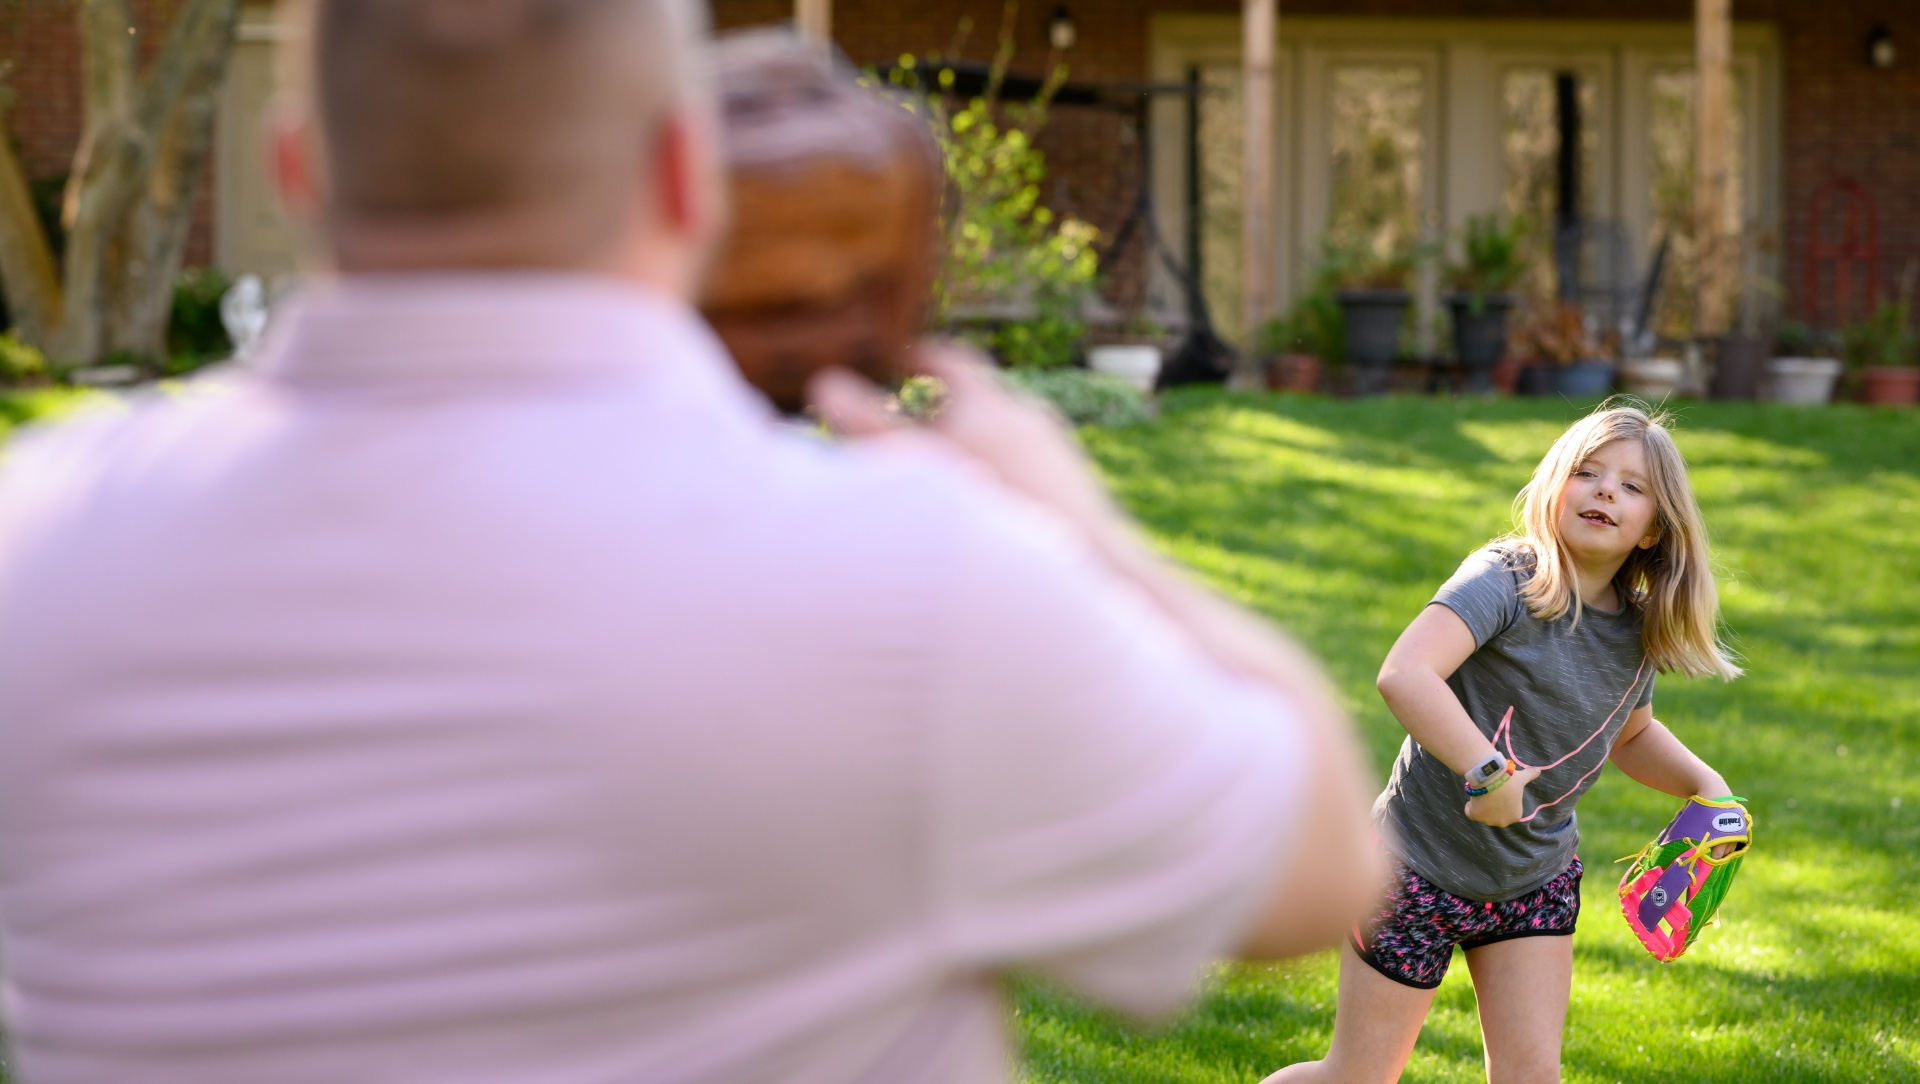 Sarah Beth throws a ball to her father, who is standing in front of the camera. She is wearing a grey shirt, black shorts with pink polka dots, and a colorful softball glove.